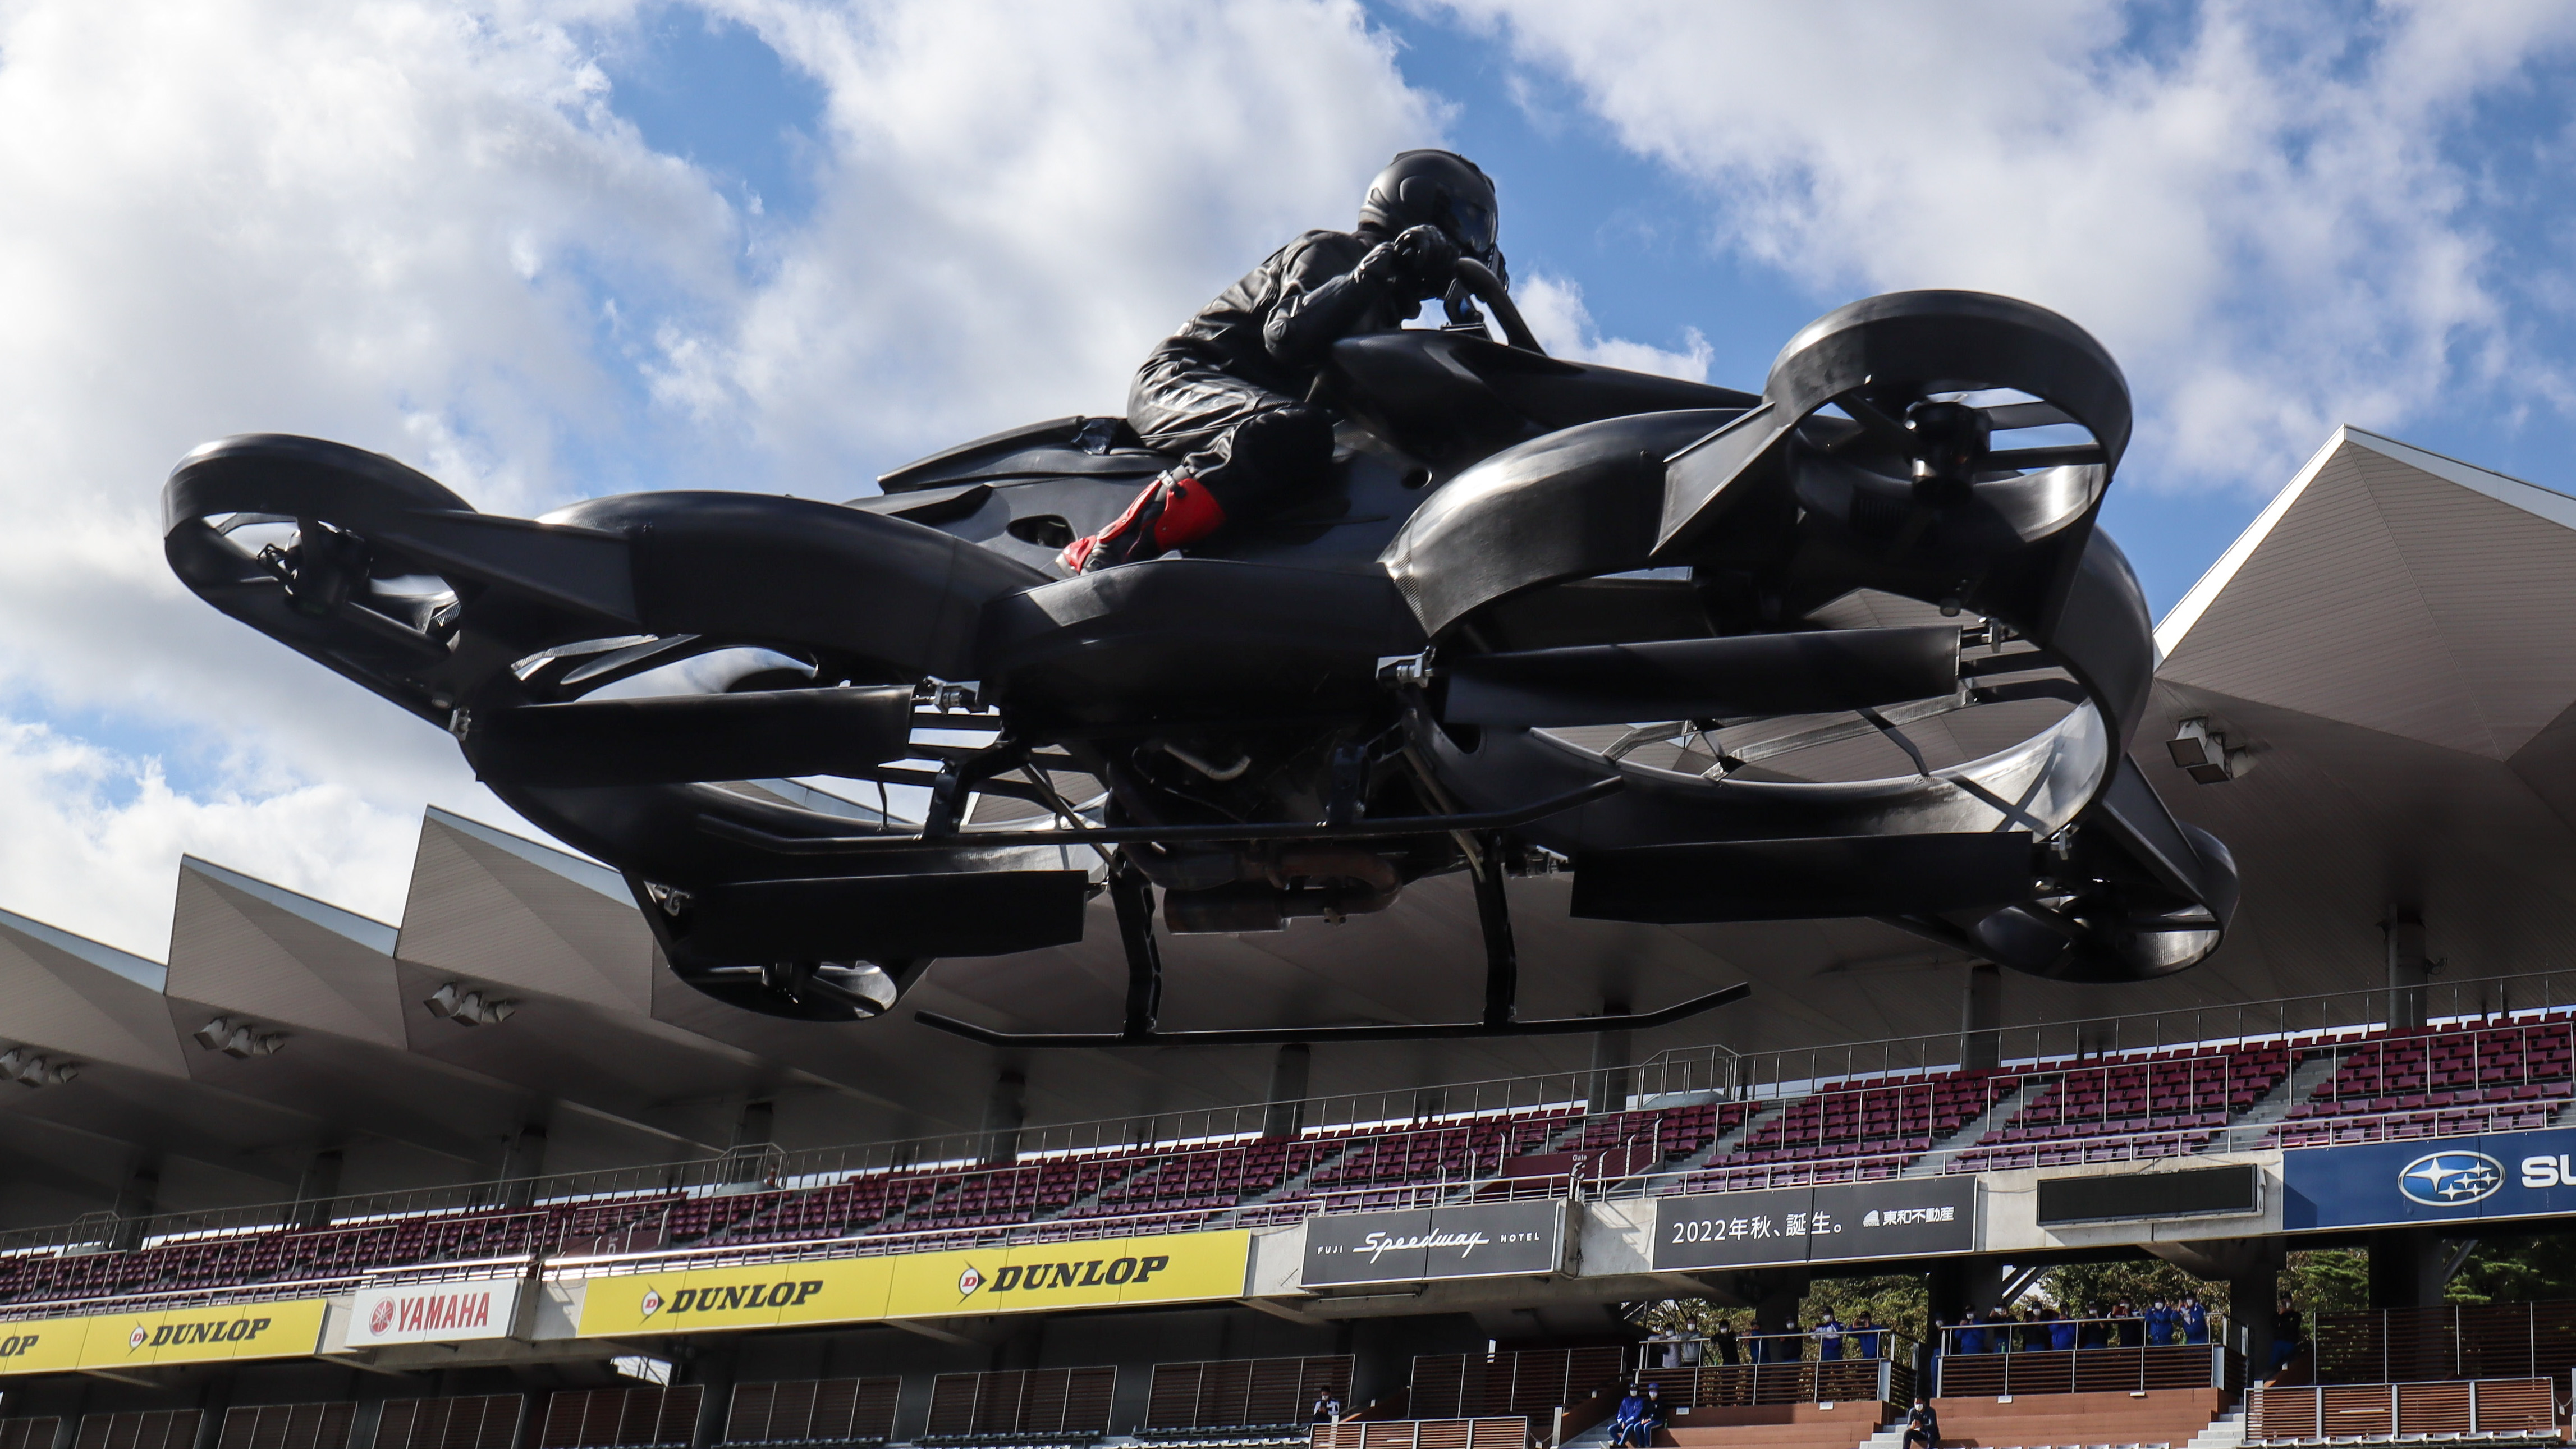 nikkei.com - Staff Writer - Japan drone maker's flying motorcycle to hit the skies next year